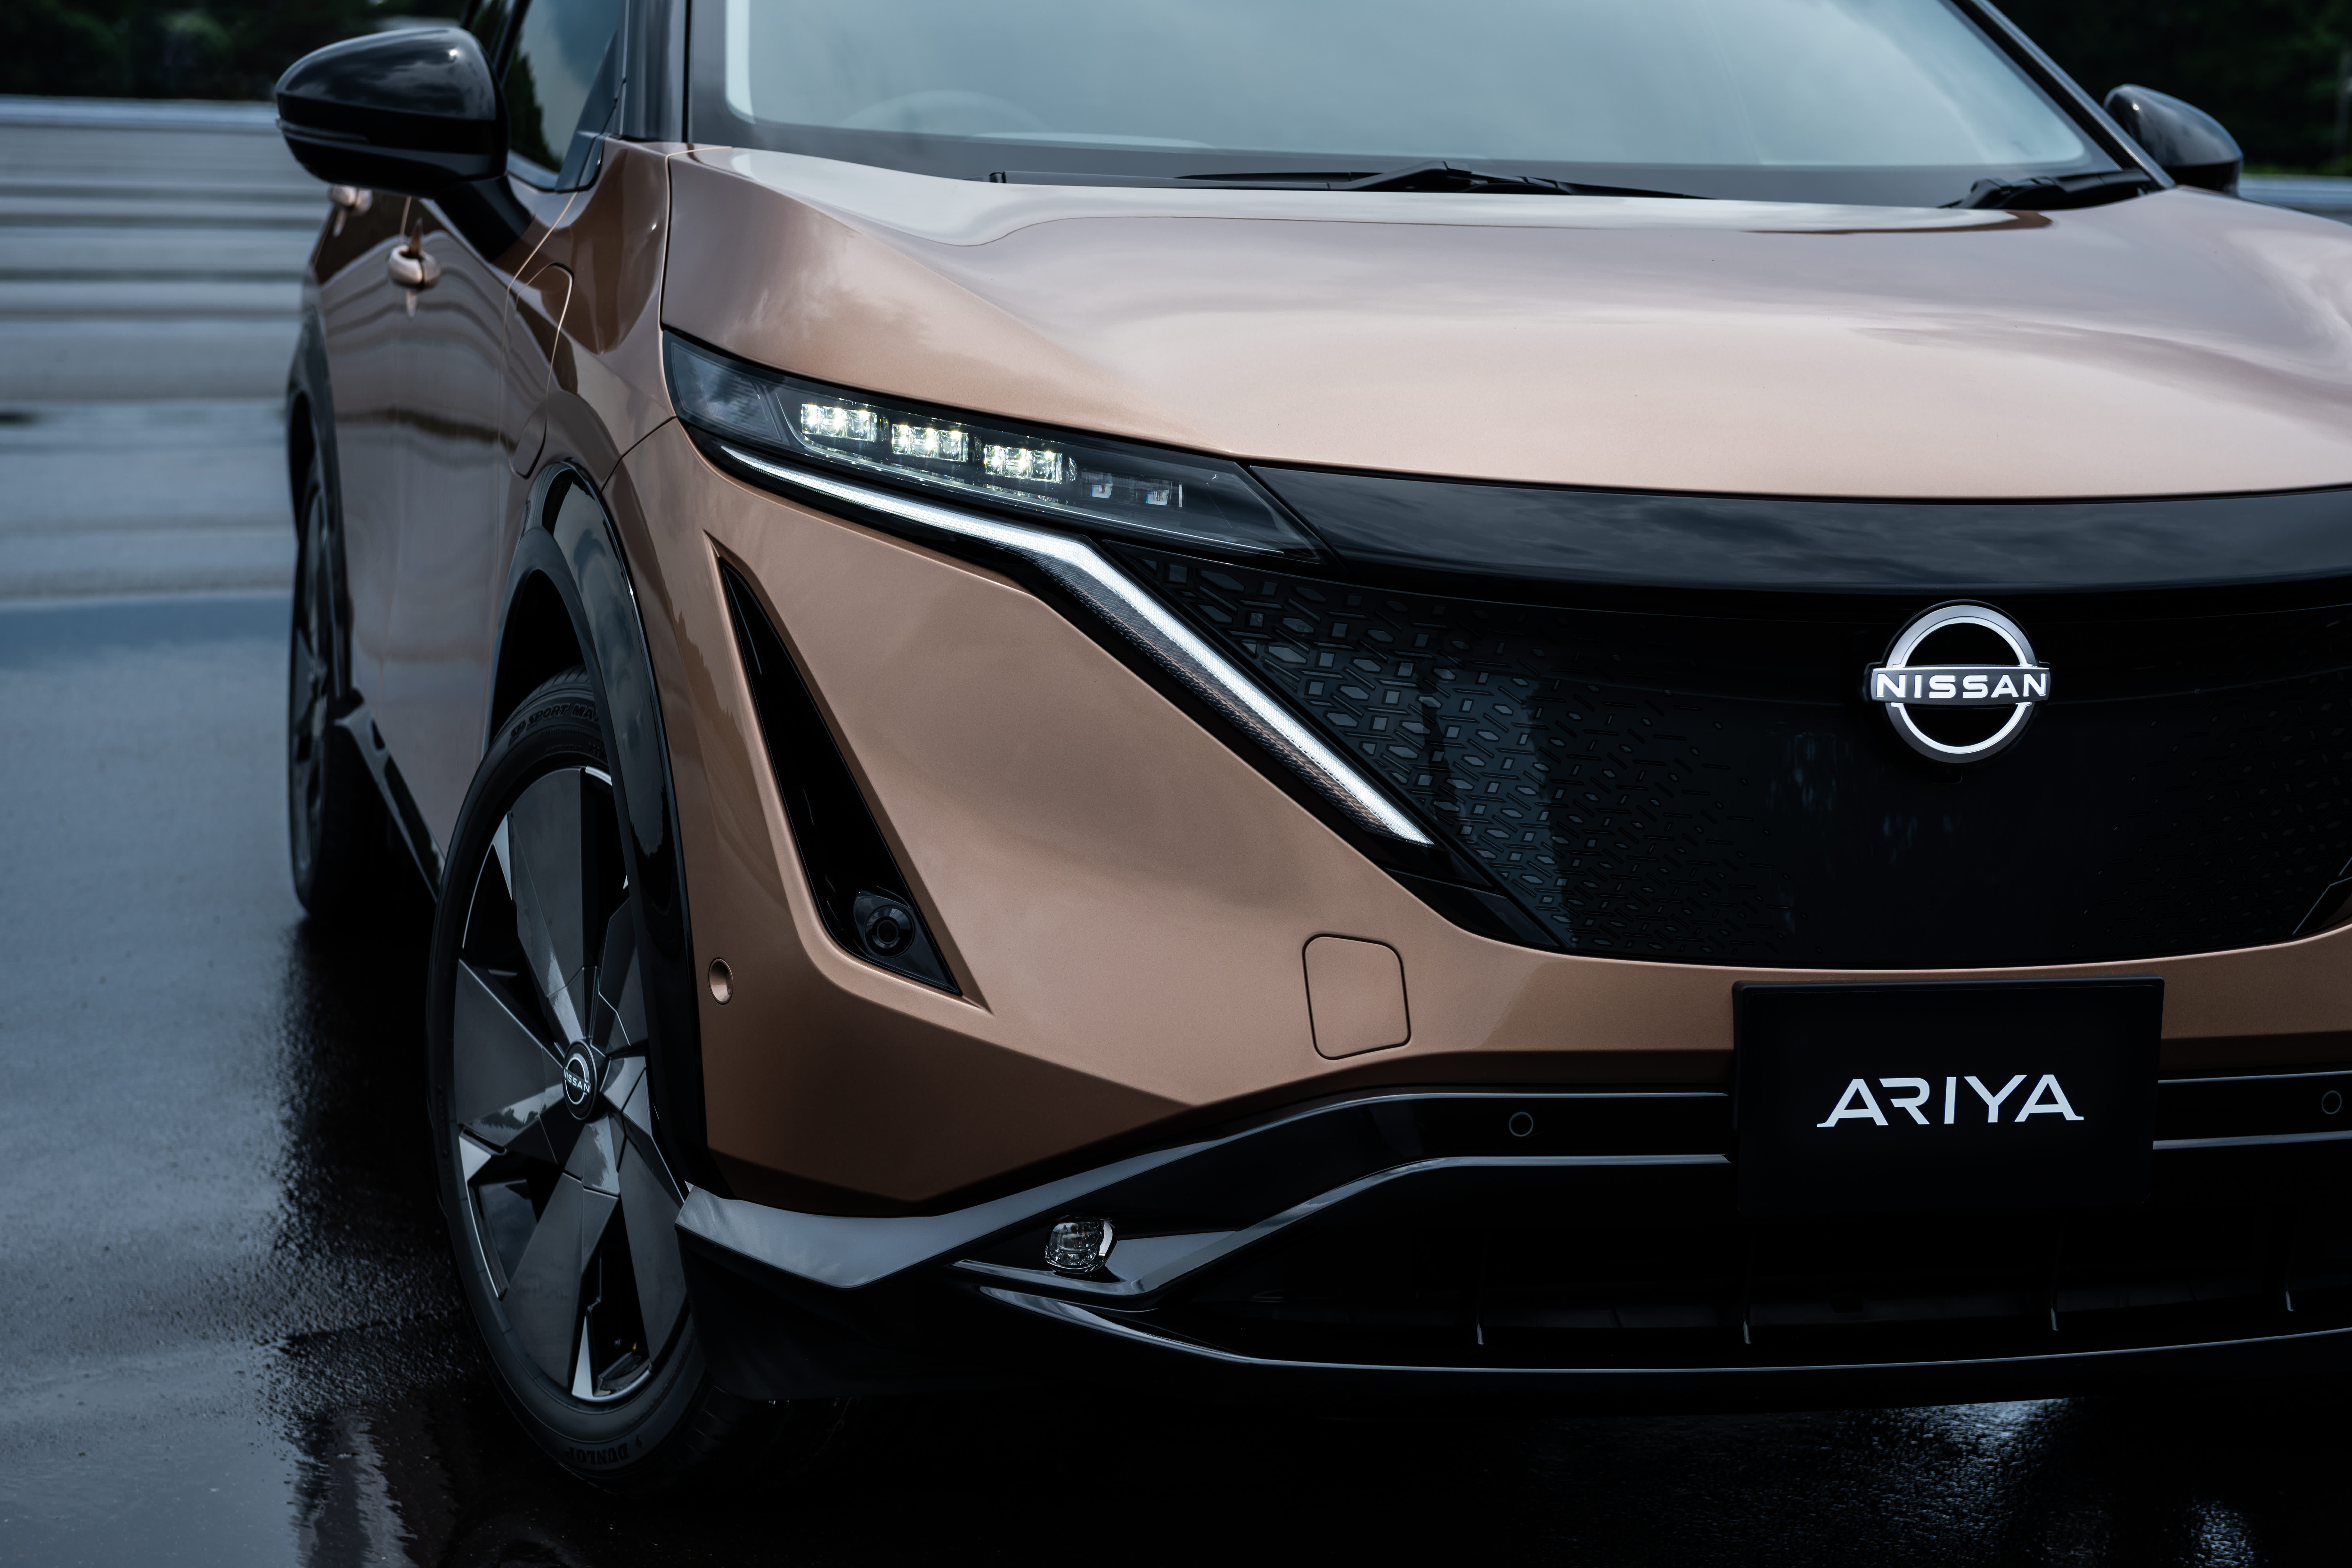 Nissan unveils Ariya crossover as first new all-electric vehicle under turnaround plan – CNBC